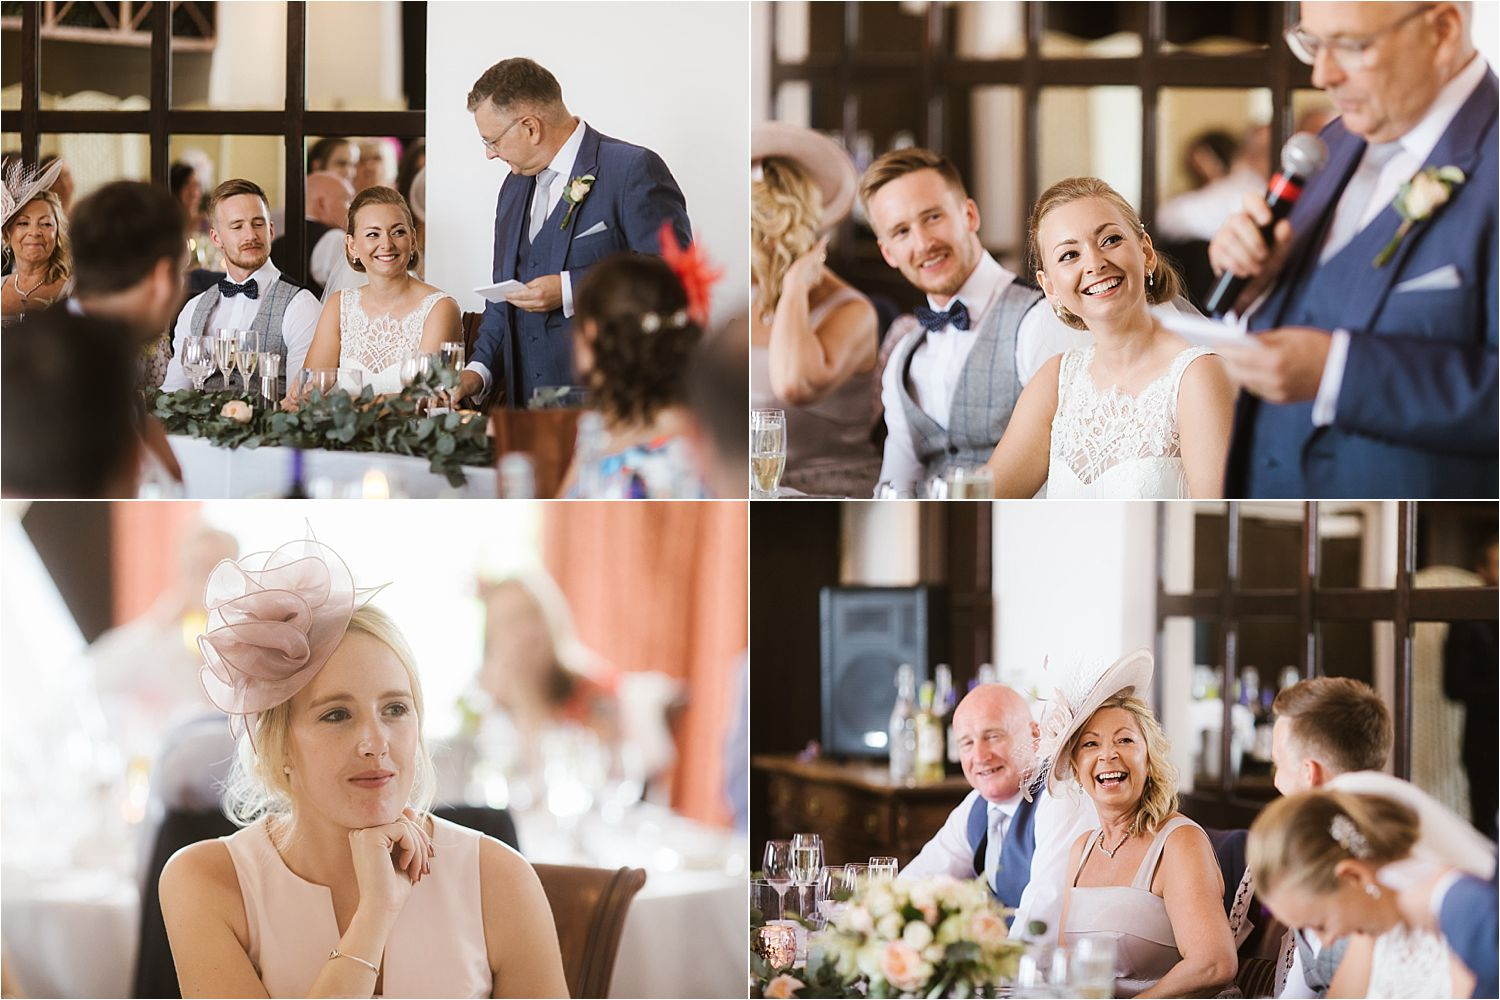 Guests enjoying speeches at Low Wood Bay wedding